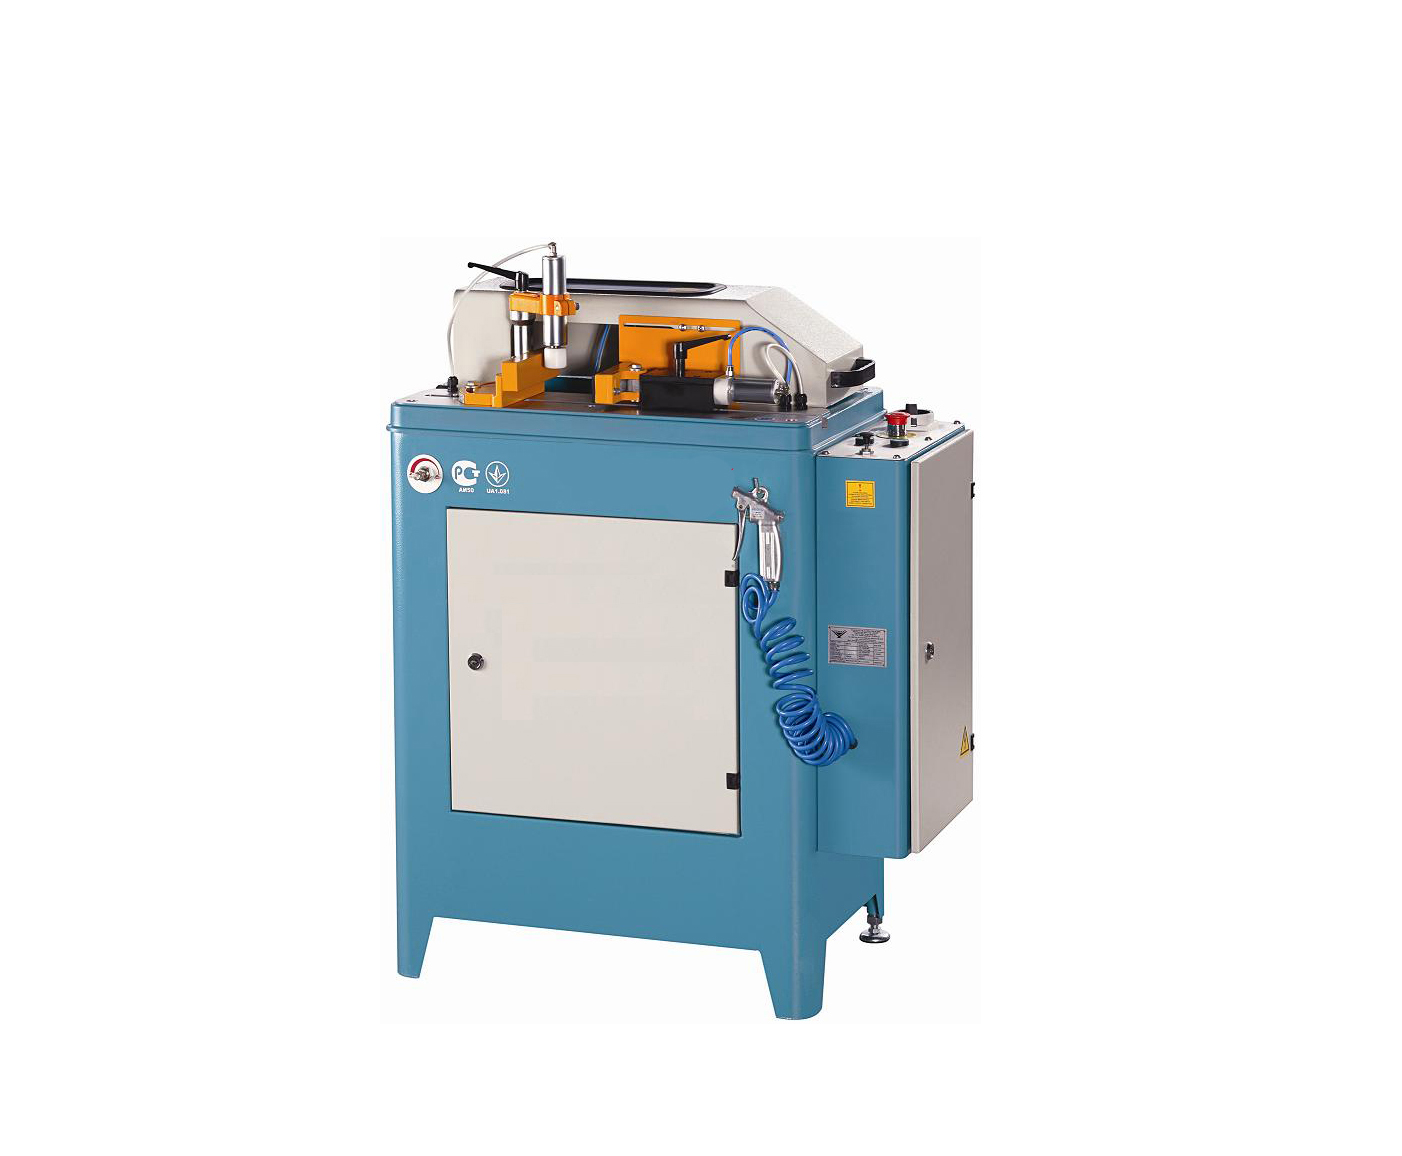 TUCANA-02-AS-Automatic-Angular-End-Milling-Machine-with-Quick-Cutter-Change-Spindle